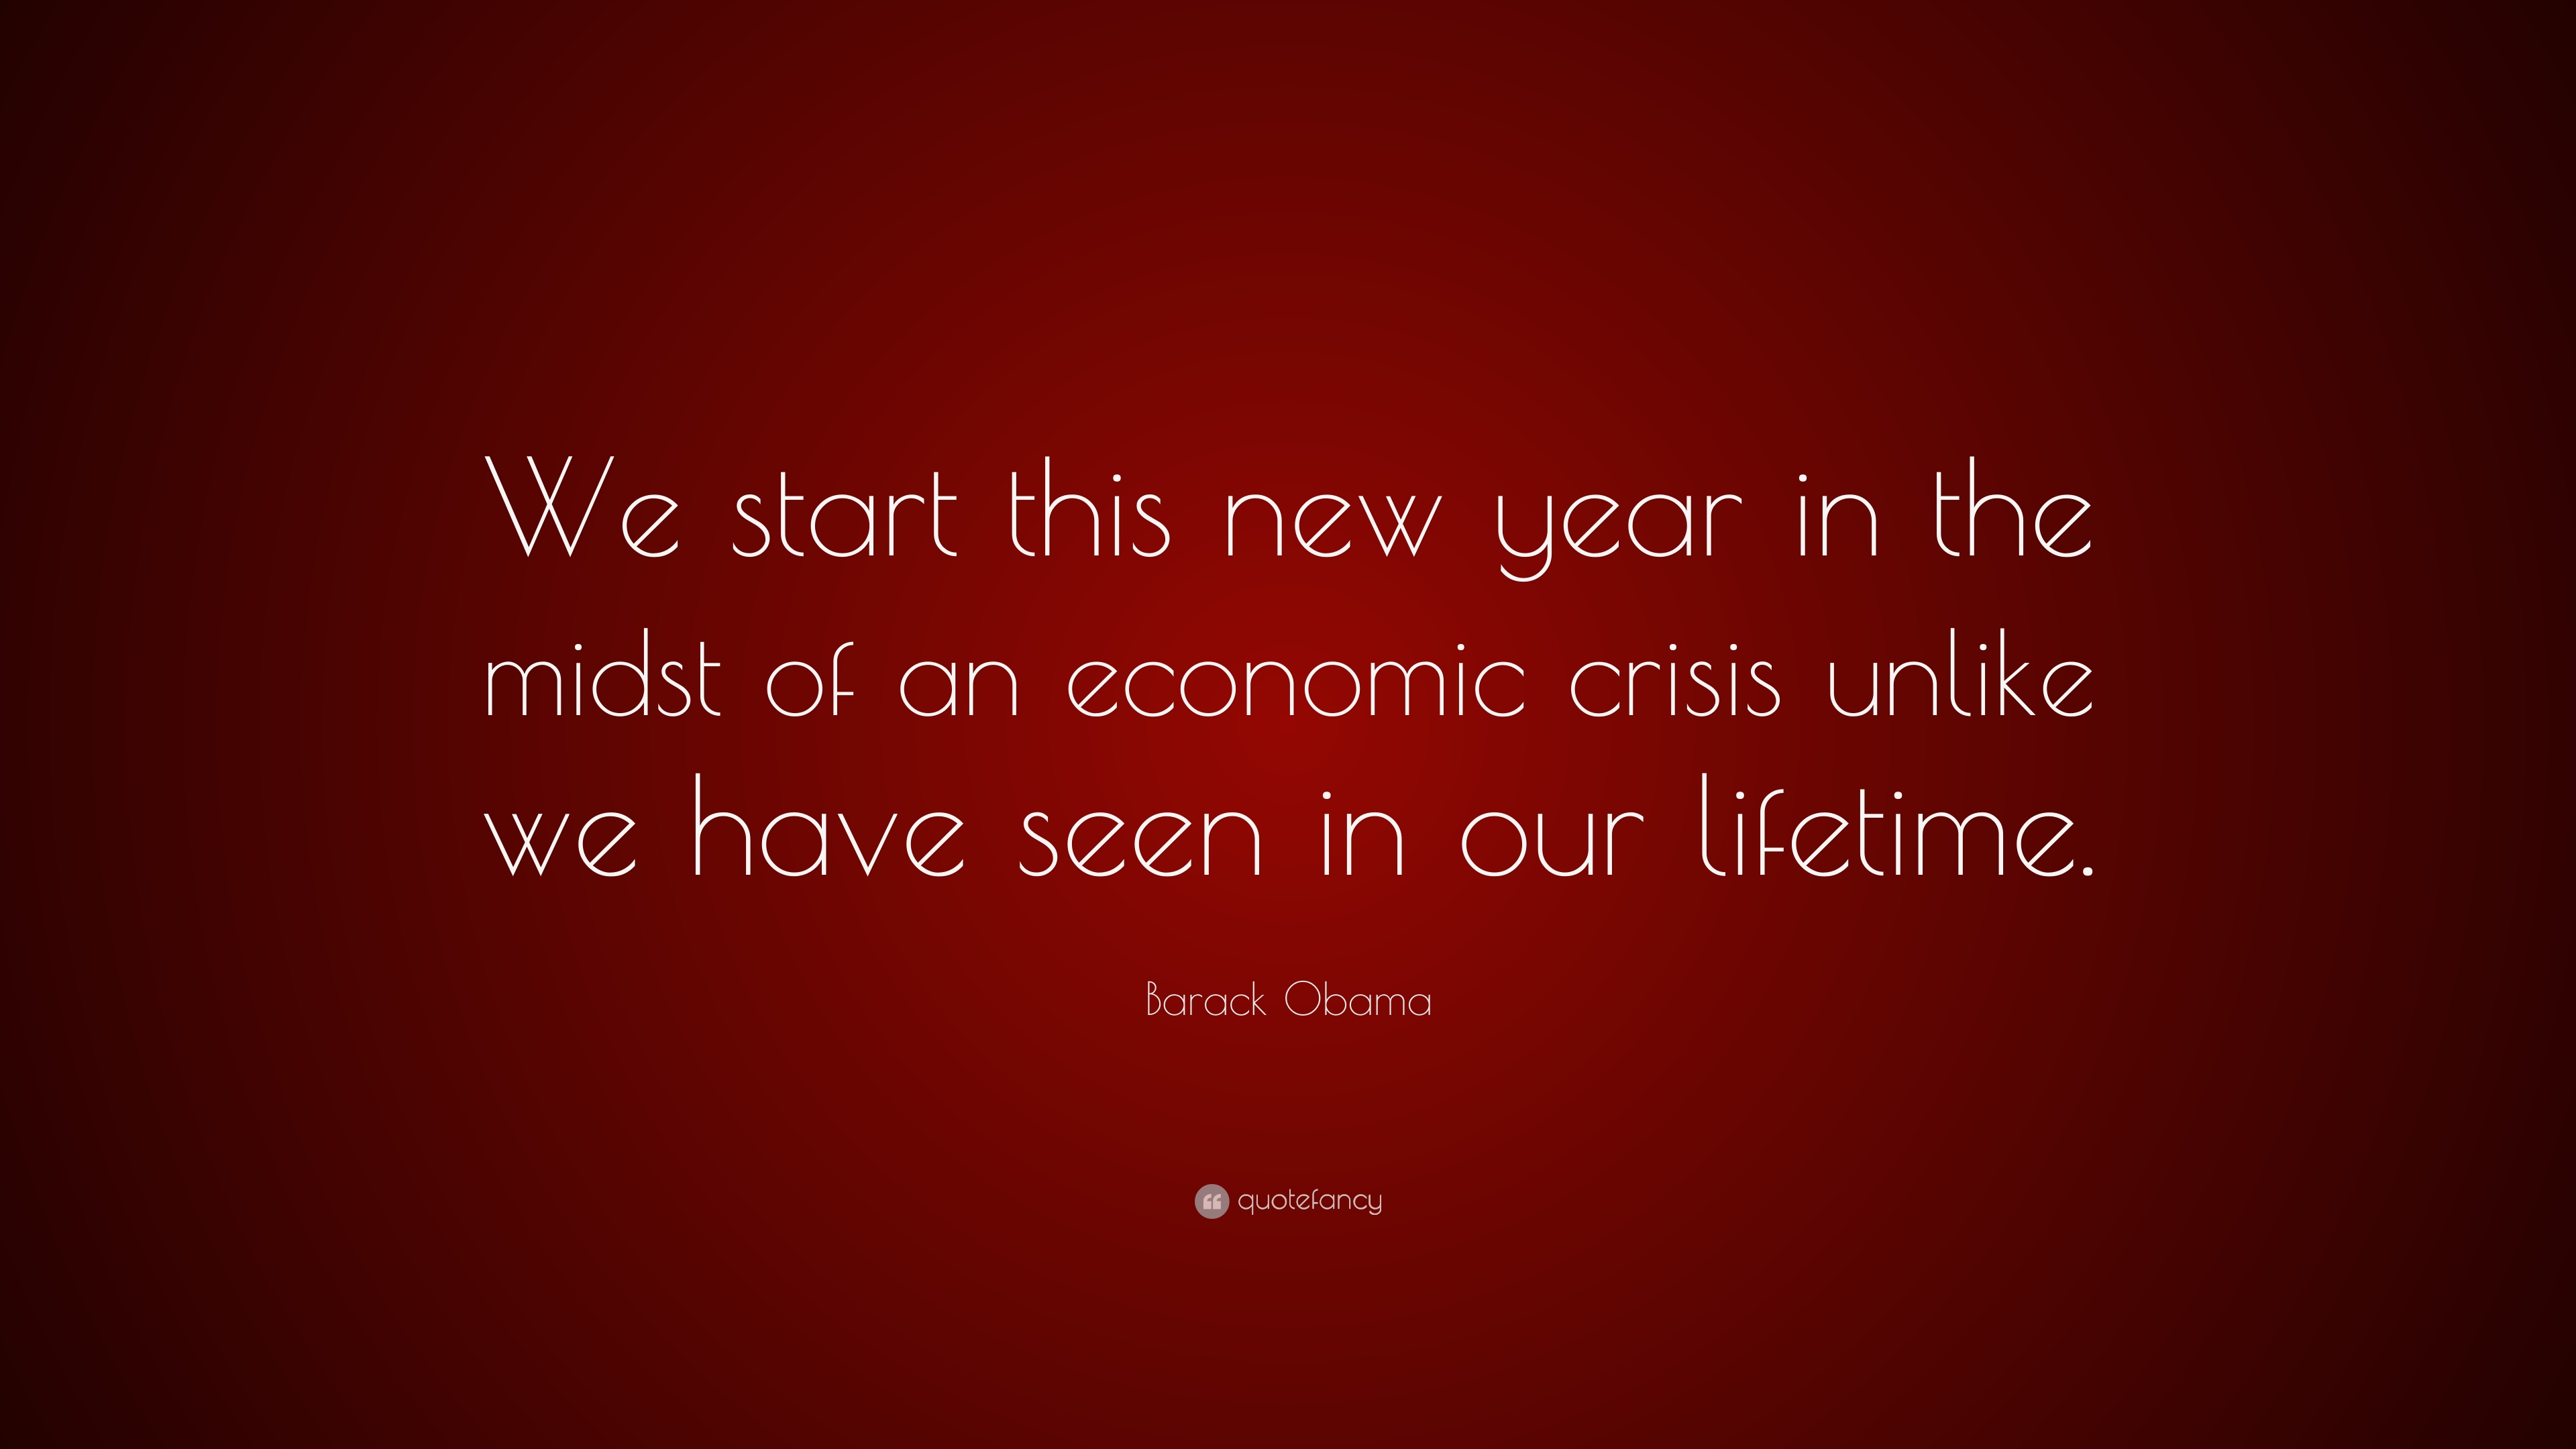 Barack Obama Quote: U201cWe Start This New Year In The Midst Of An Economic